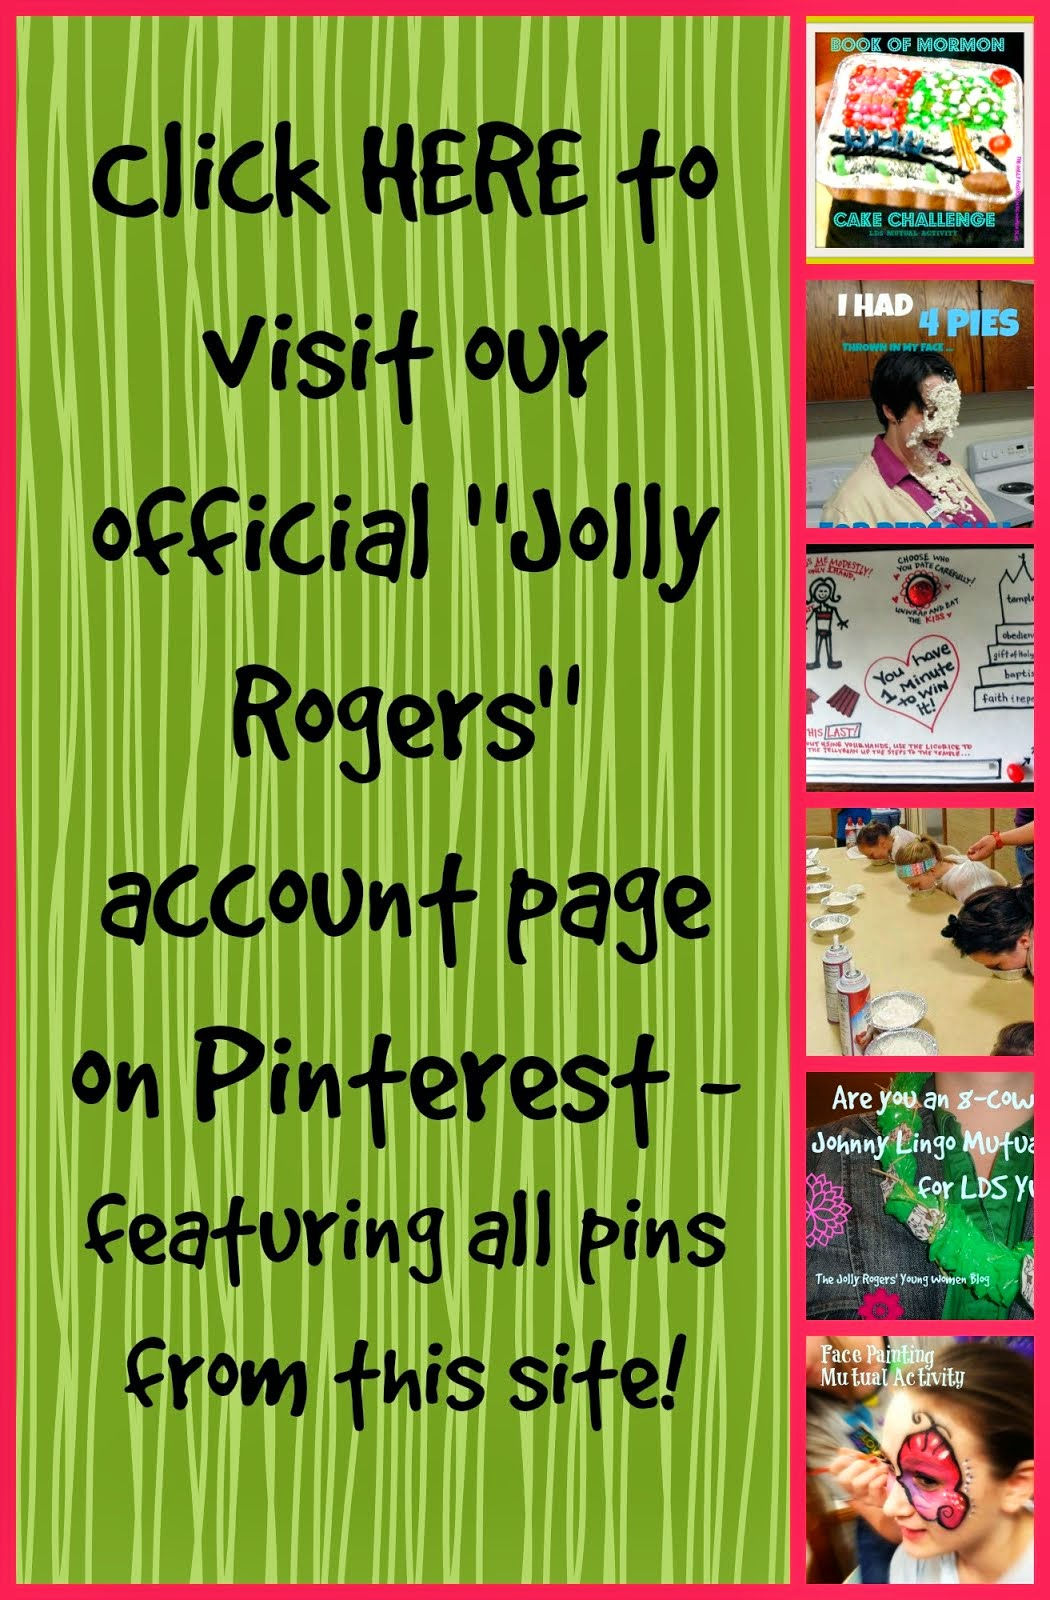 Visit us on Pinterest!